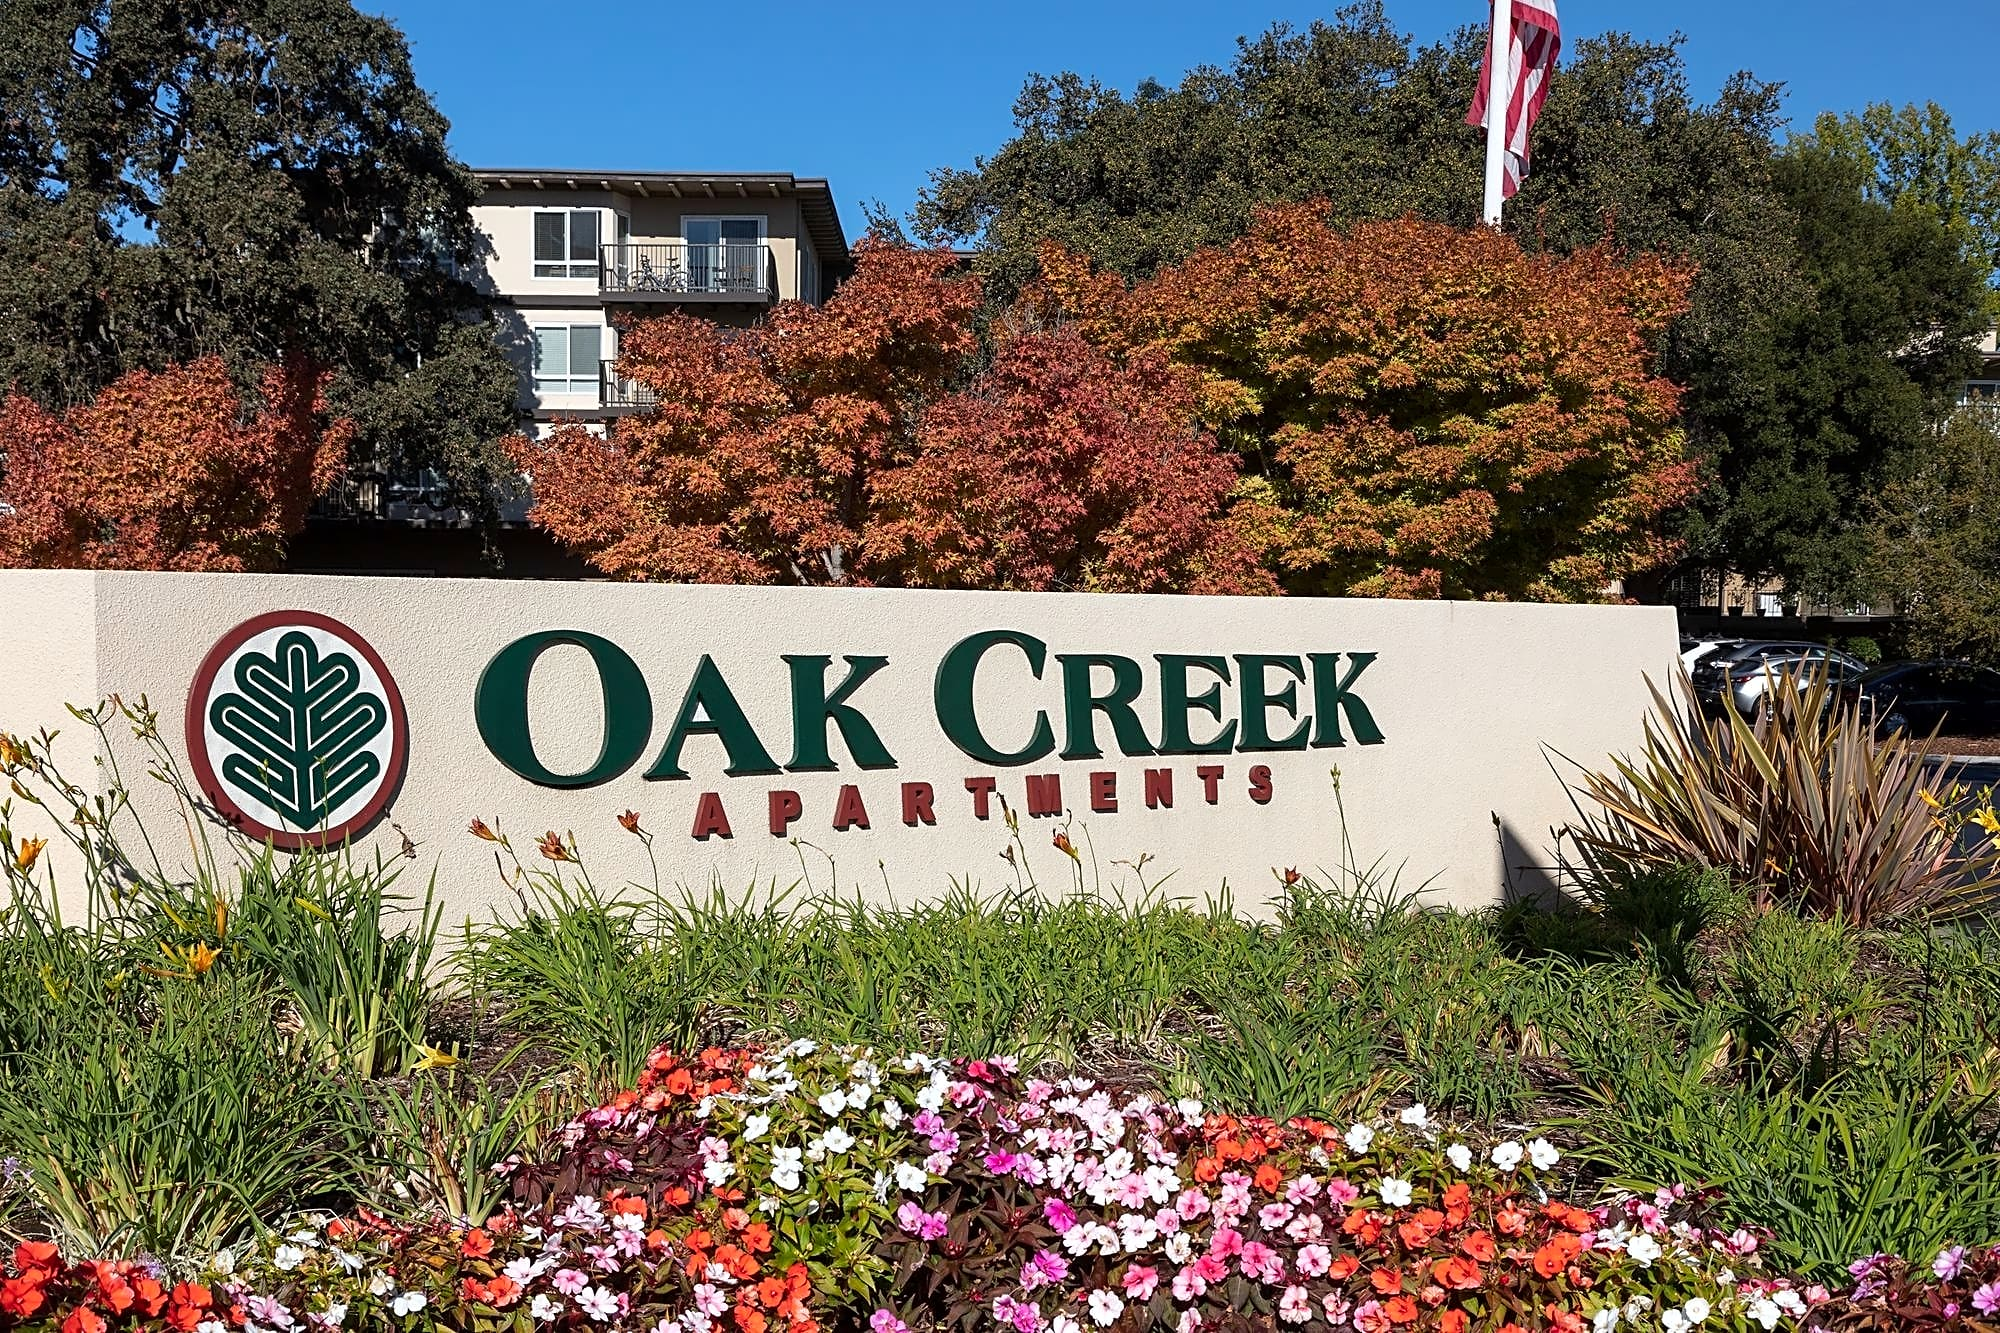 Apartments Near Stanford Oak Creek Apartments for Stanford University Students in Stanford, CA